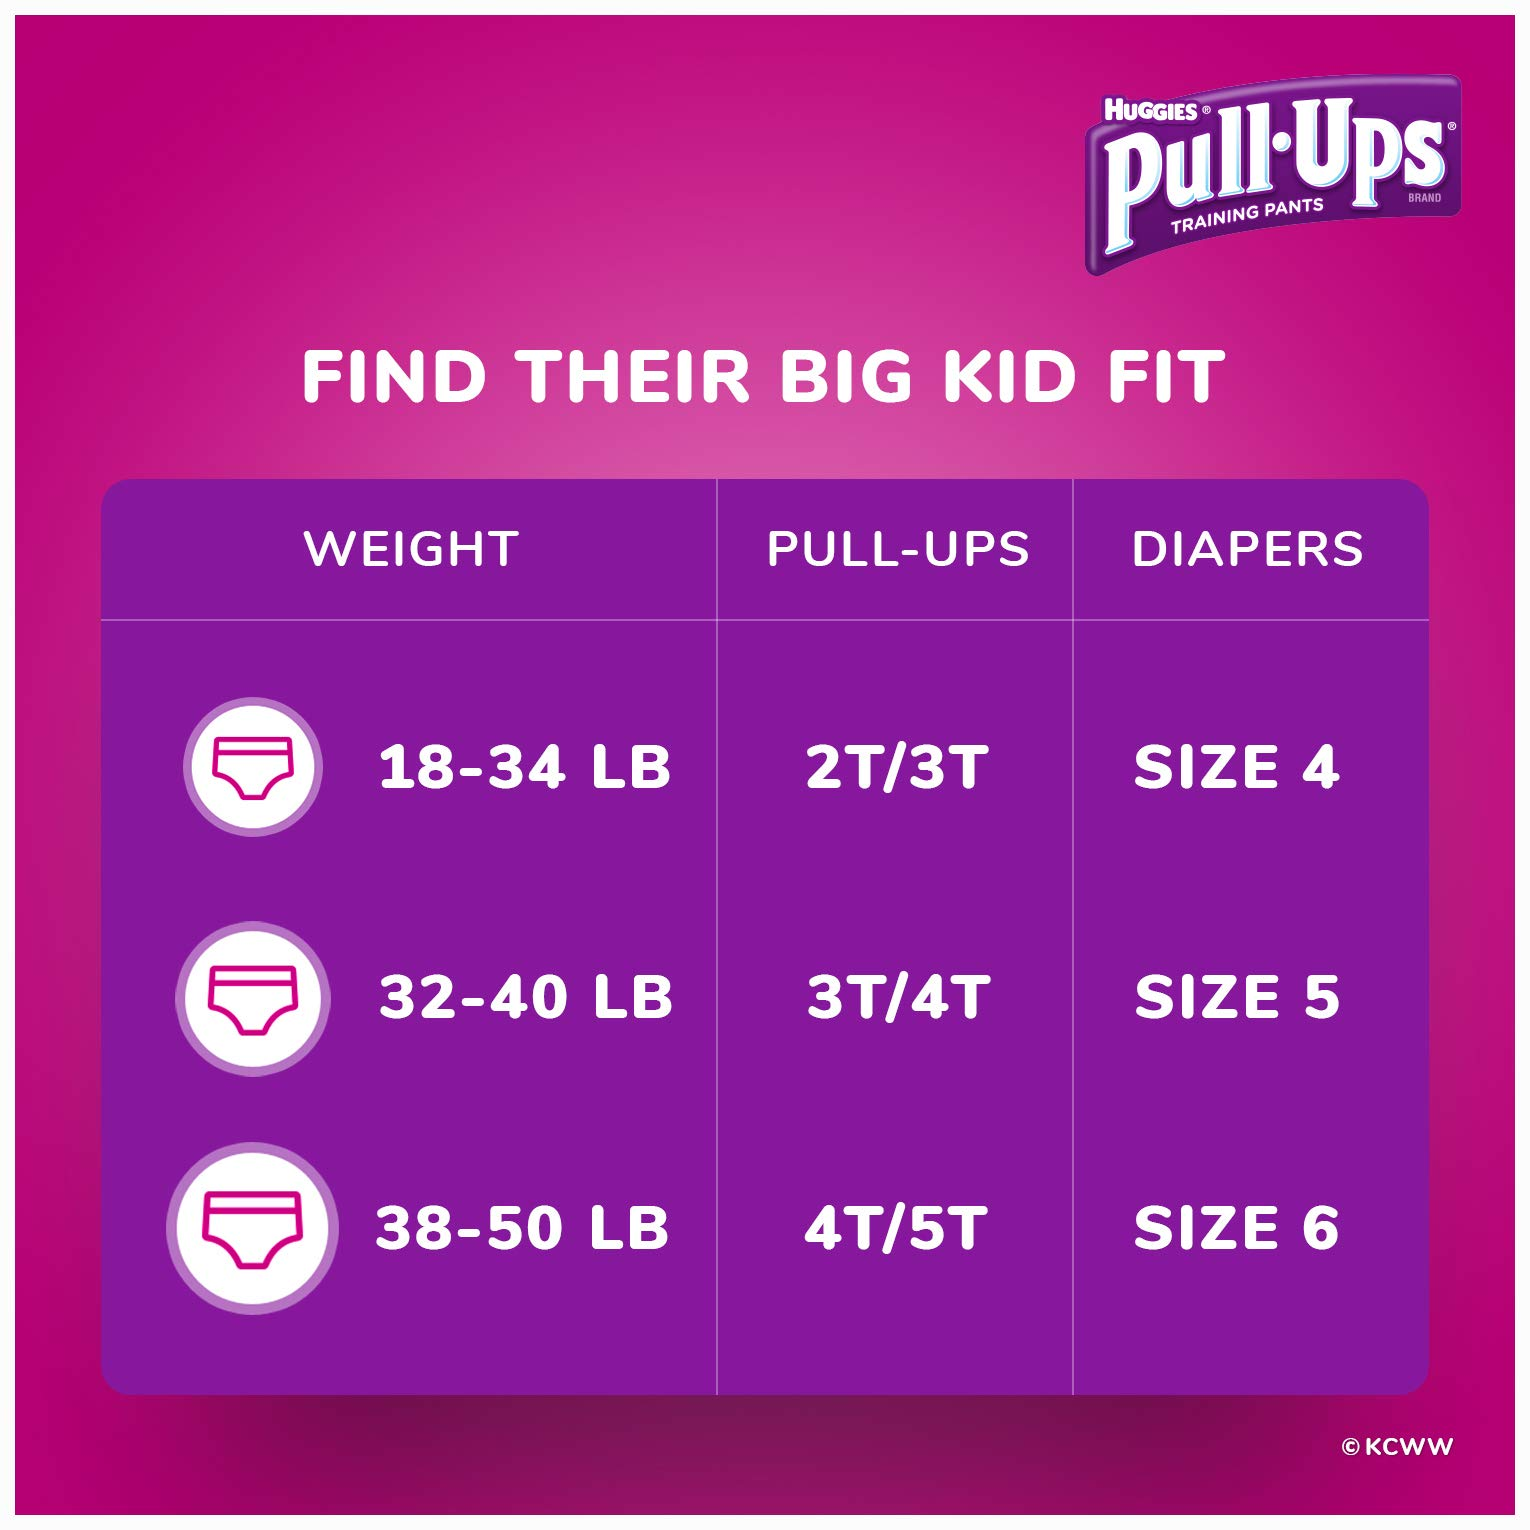 Pull-Ups Night-Time Potty Training Pants for Girls, 2T-3T (18-34 lb.), 23 Ct.- Pack of 4 (Packaging May Vary) by Pull-Ups (Image #6)